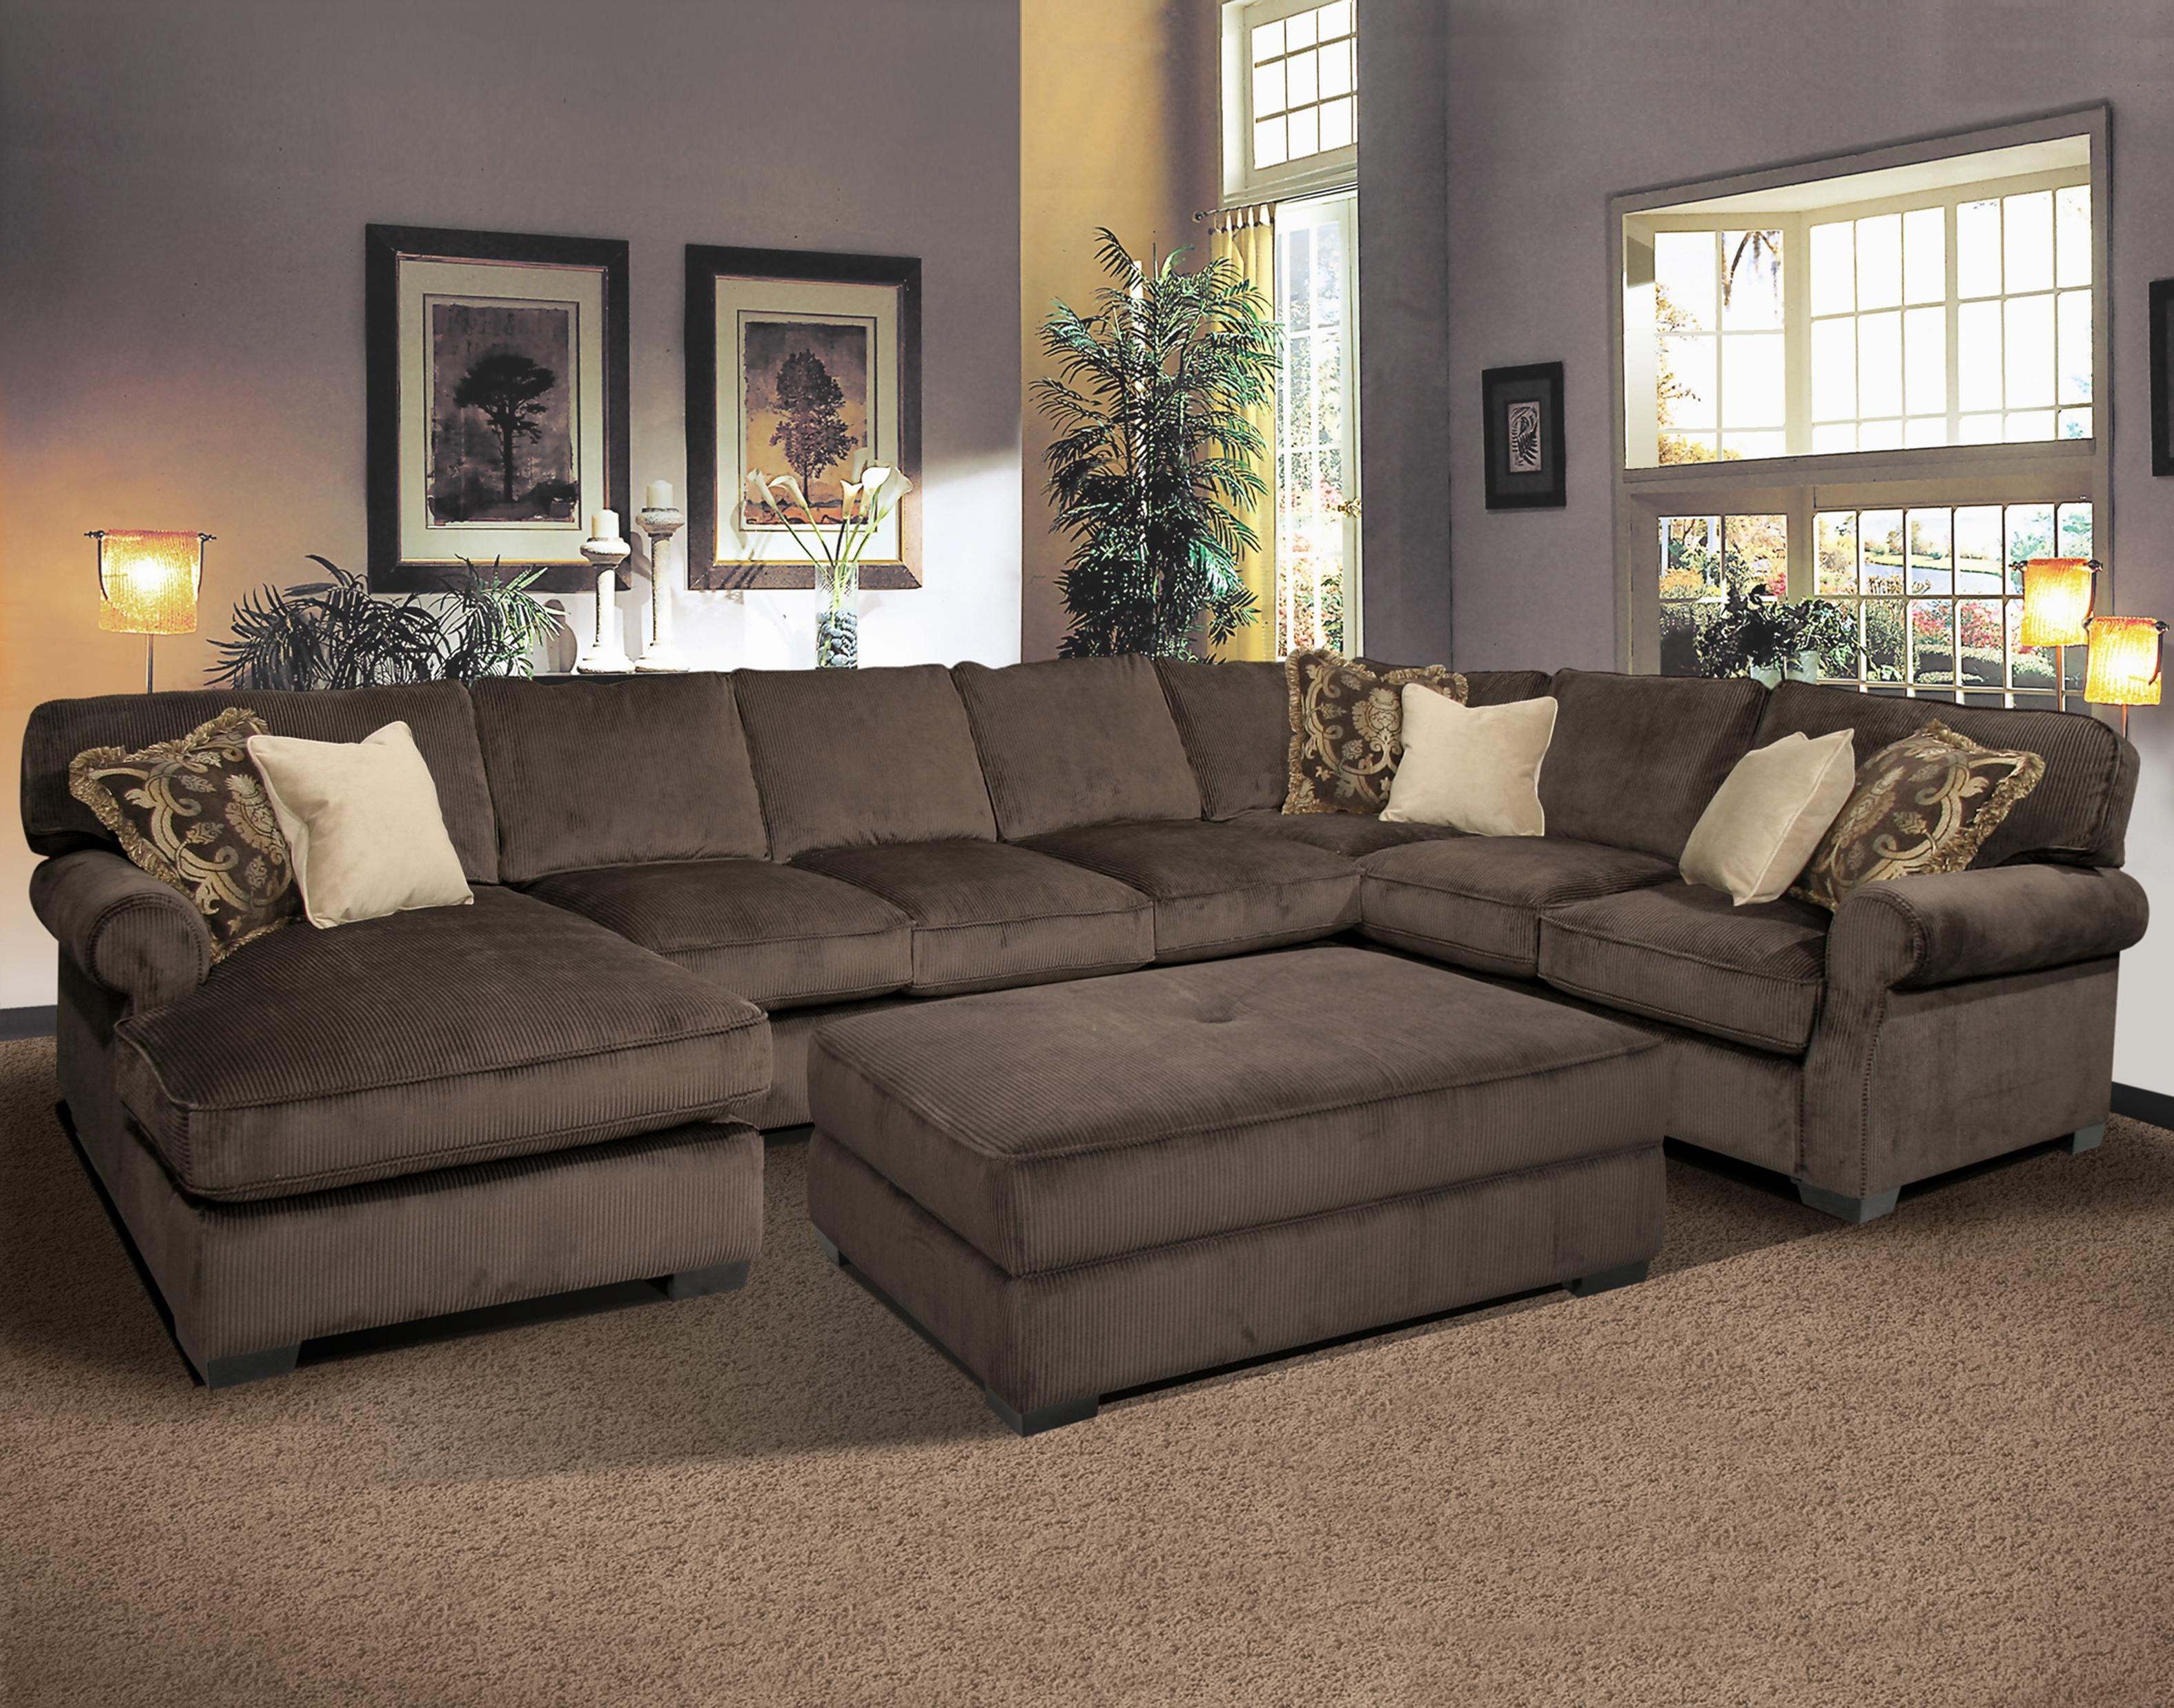 Widely Used Awesome Oversized Sectional Sofa On Grand Island Large 7 Seat Regarding Oversized Sectional Sofas With Chaise (View 10 of 15)